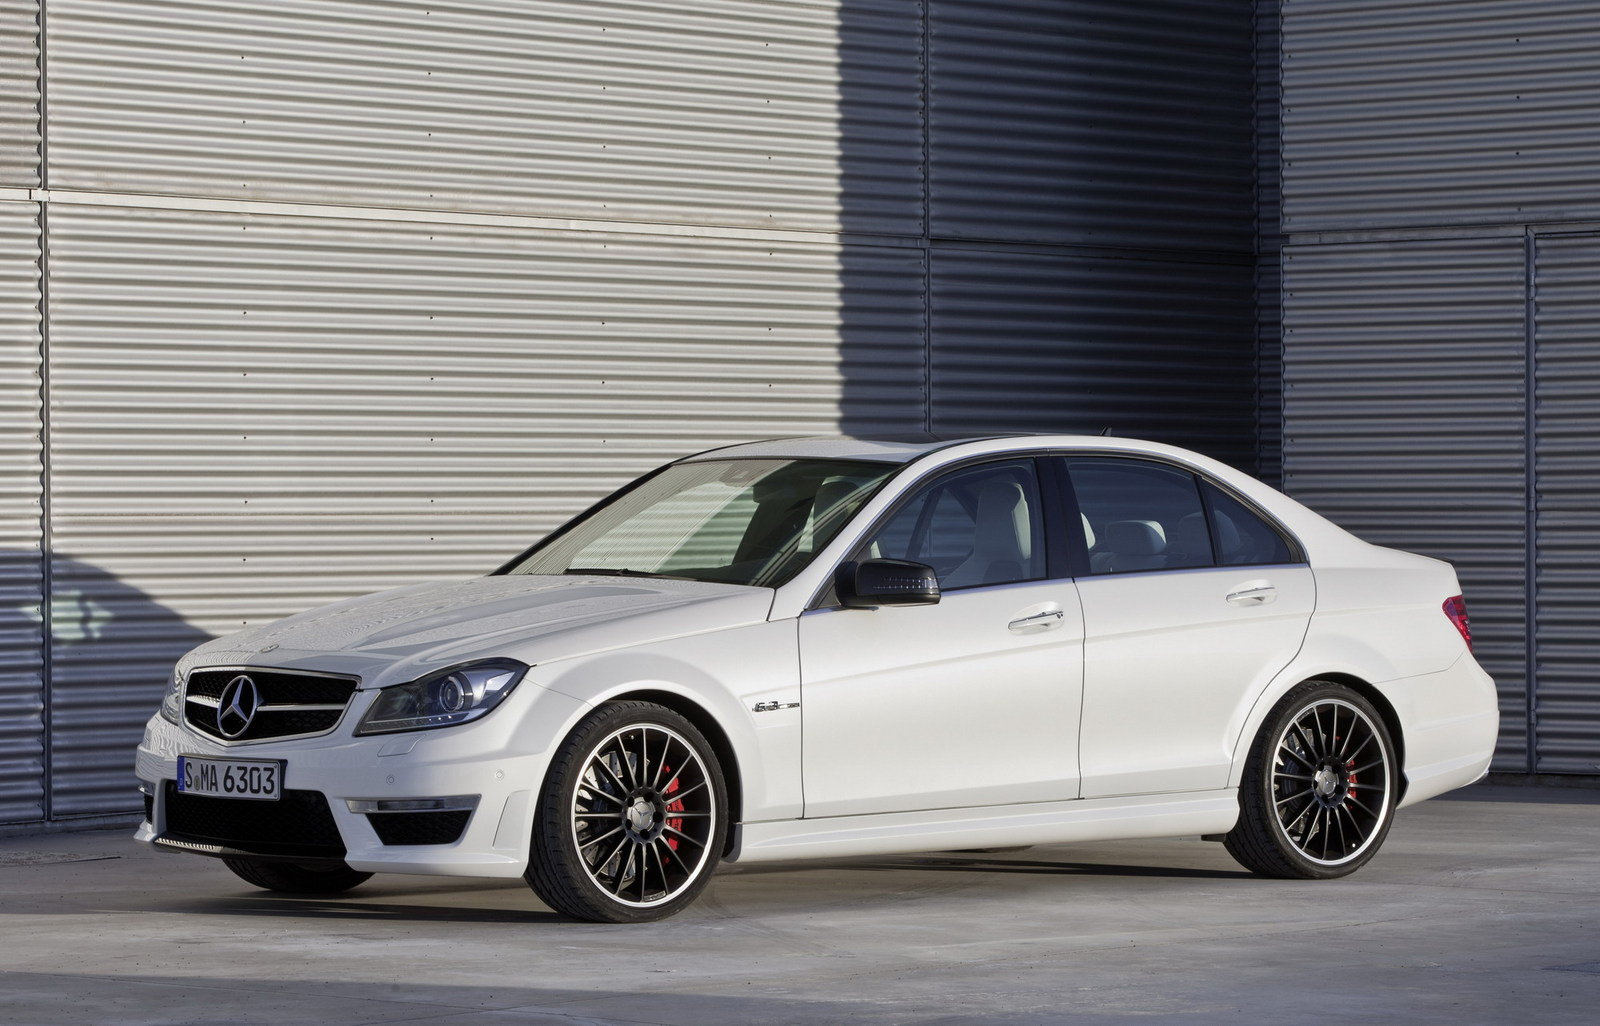 2012 C63 Amg For Sale >> 2012 Mercedes C63 AMG | Top Speed